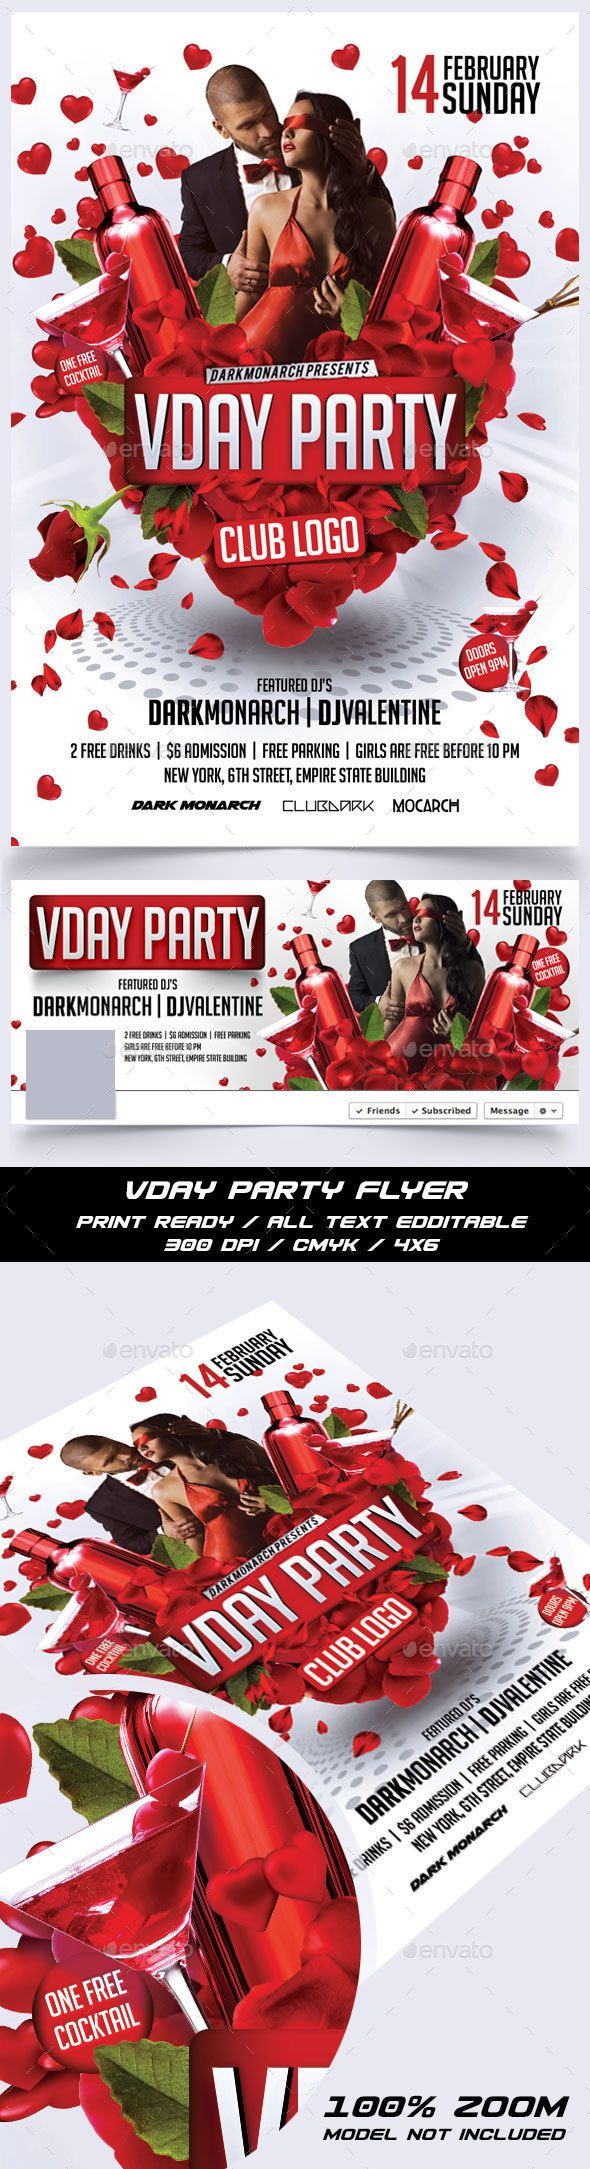 Valentine Day Party Flyer — Photoshop PSD #party #event • Available here → https://graphicriver.net/item/valentine-day-party-flyer/14291227?ref=pxcr